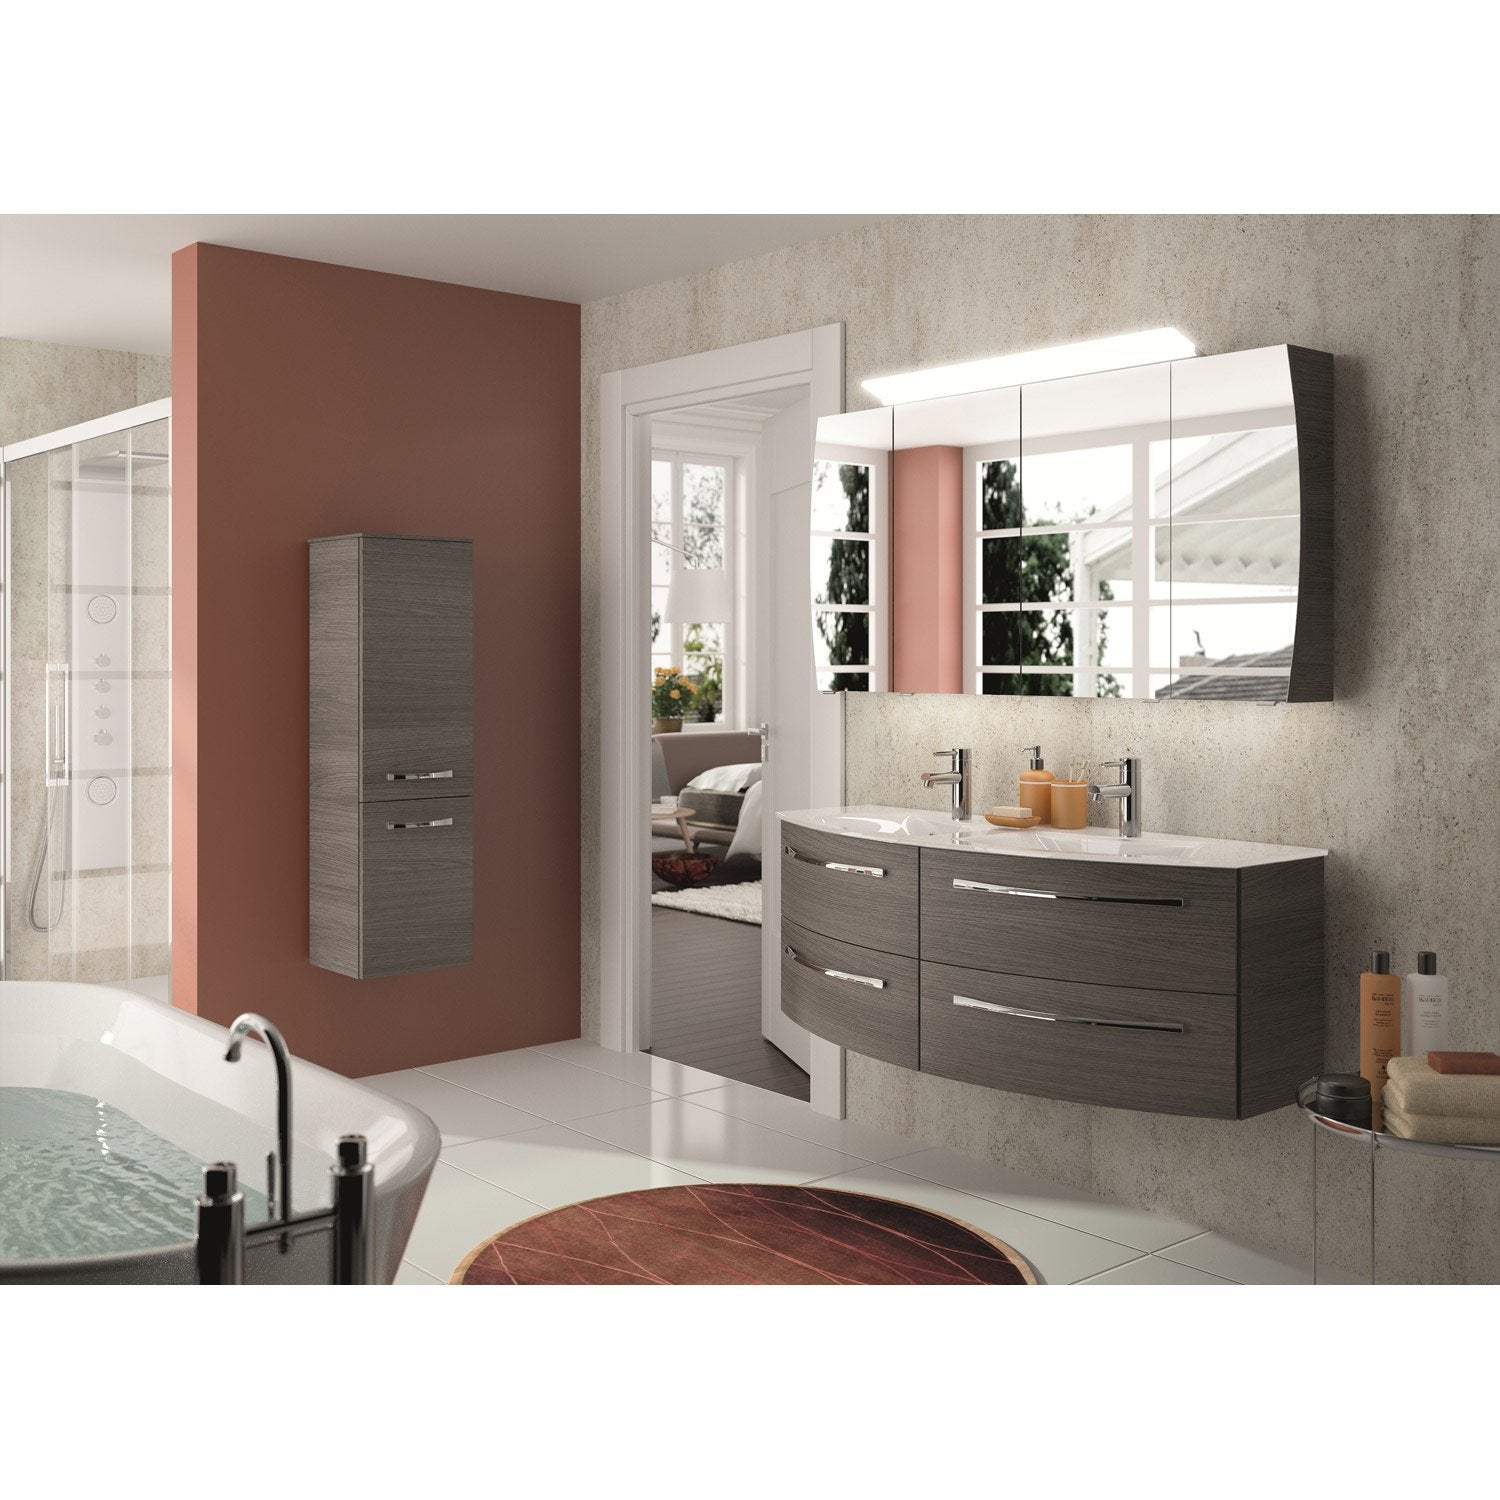 meuble de salle de bains image decor gris graphite 130 cm leroy merlin. Black Bedroom Furniture Sets. Home Design Ideas